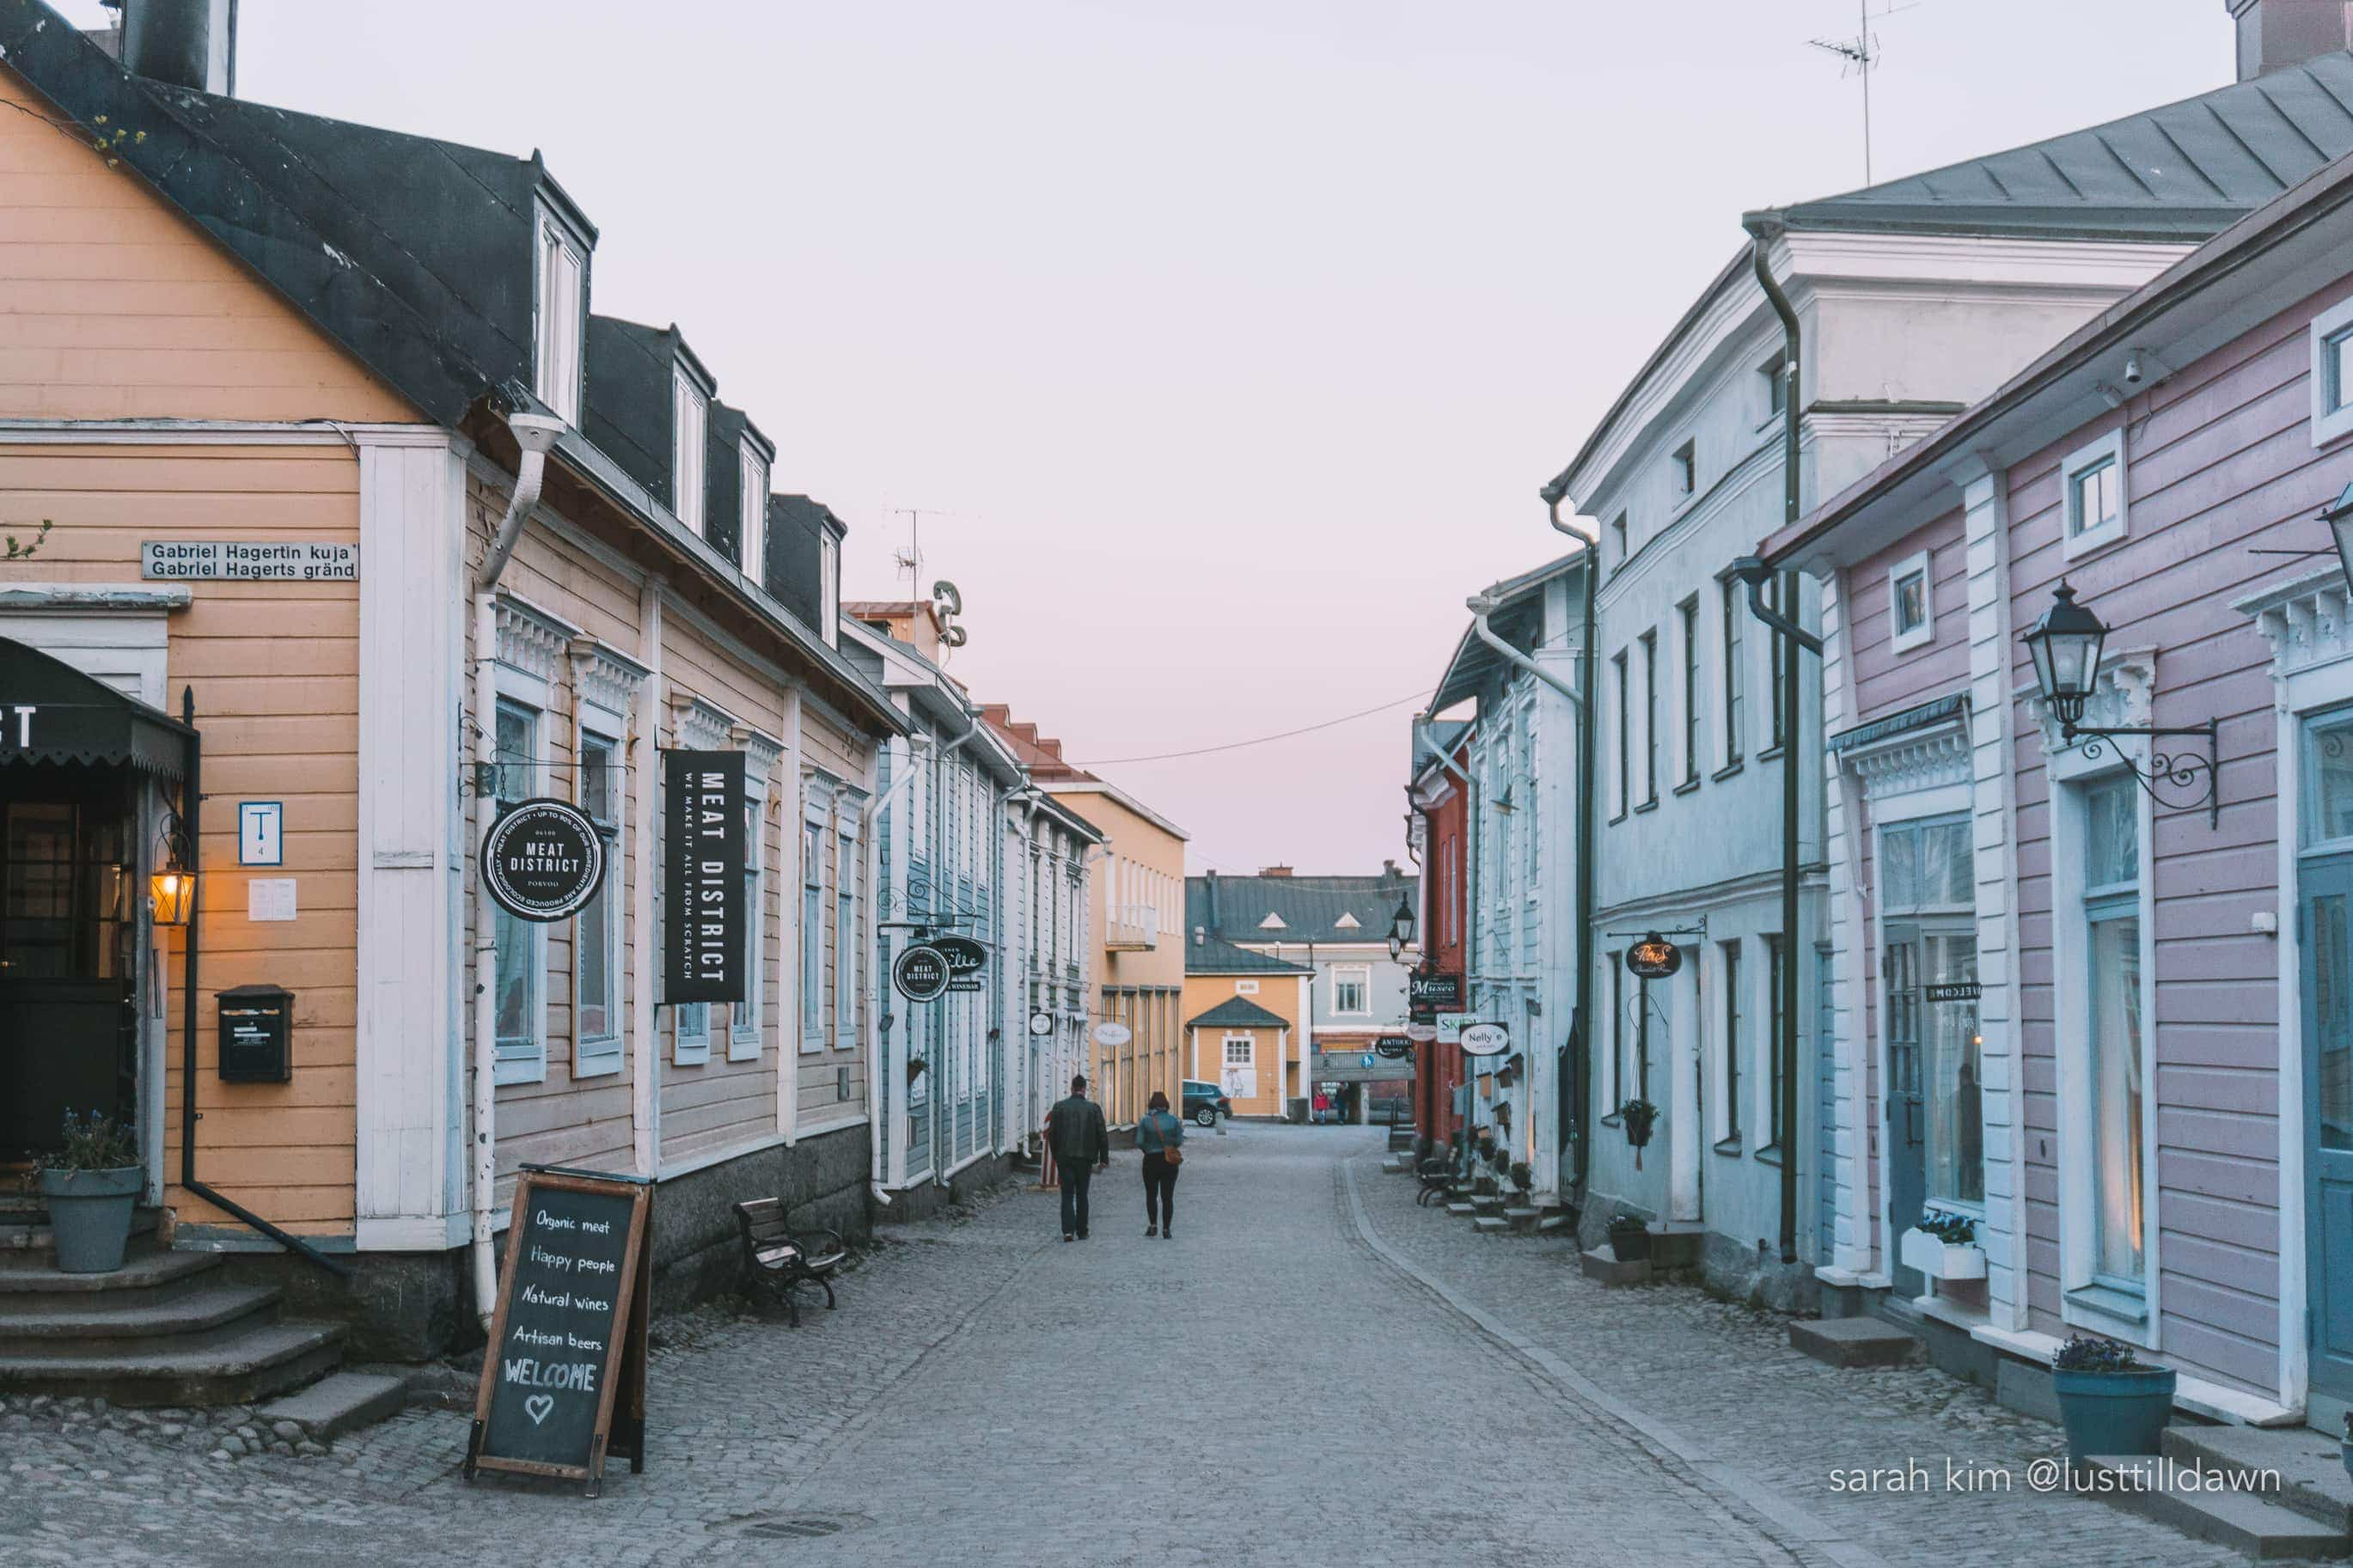 porvoo medieval town colorful buildings instagrammable